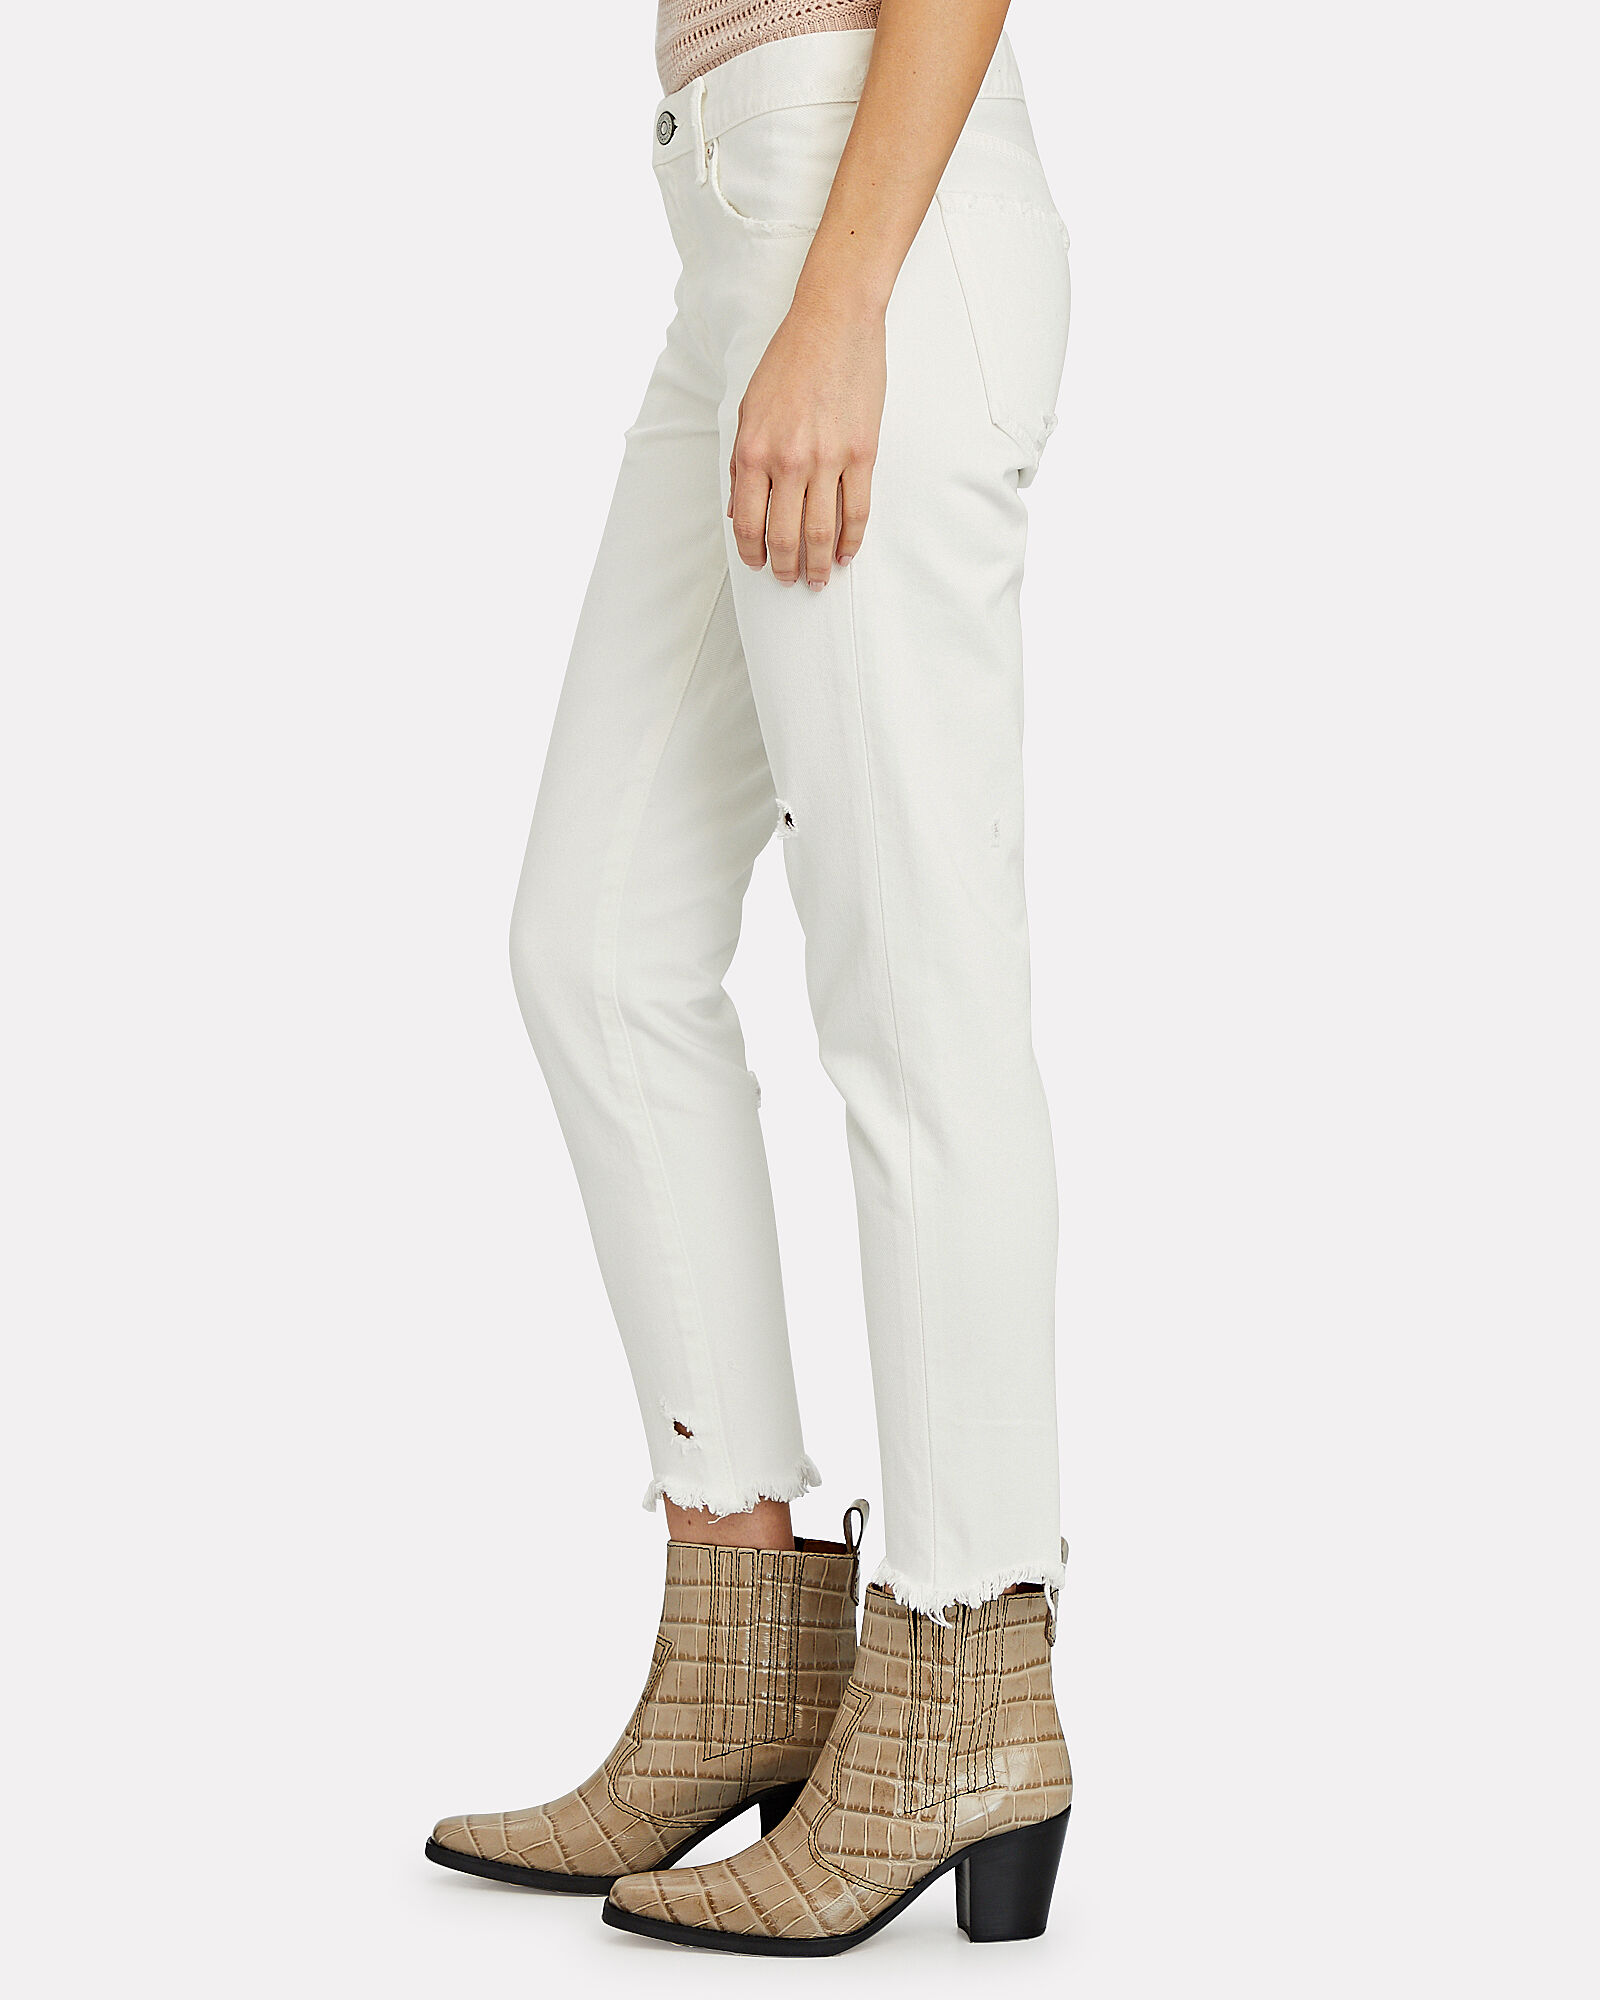 Kelley Mid-Rise Tapered Jeans, WHITE, hi-res